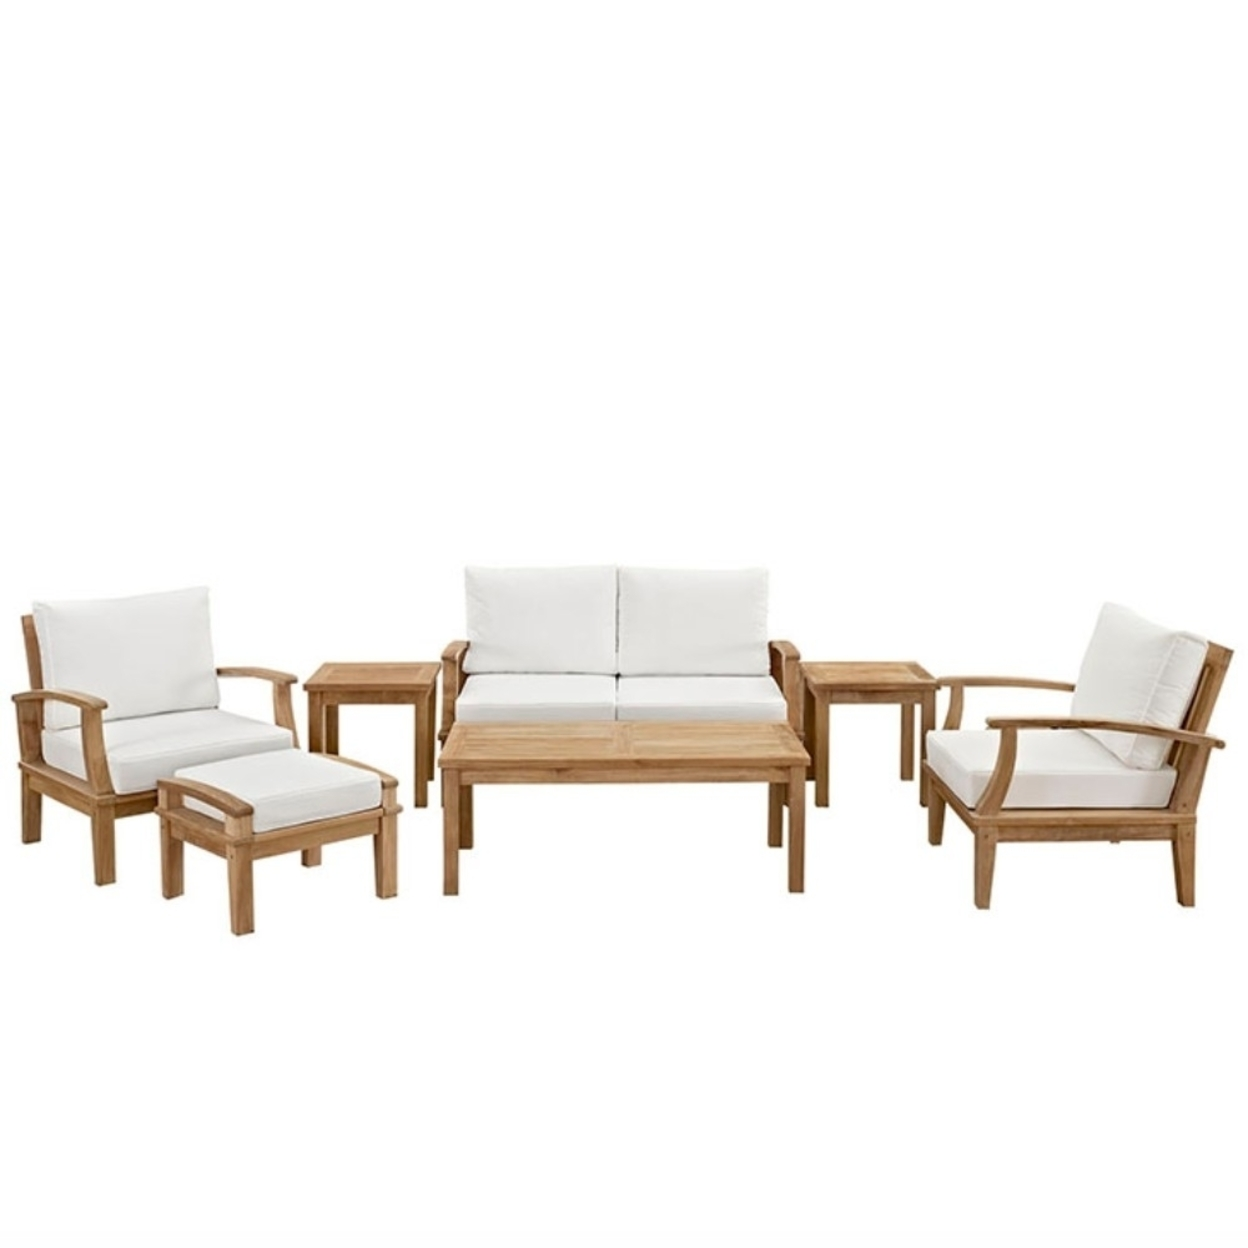 Marina 7 Piece Outdoor Patio Teak Sofa Set, Natural White 5a0c04c8e224616d4e4fd333